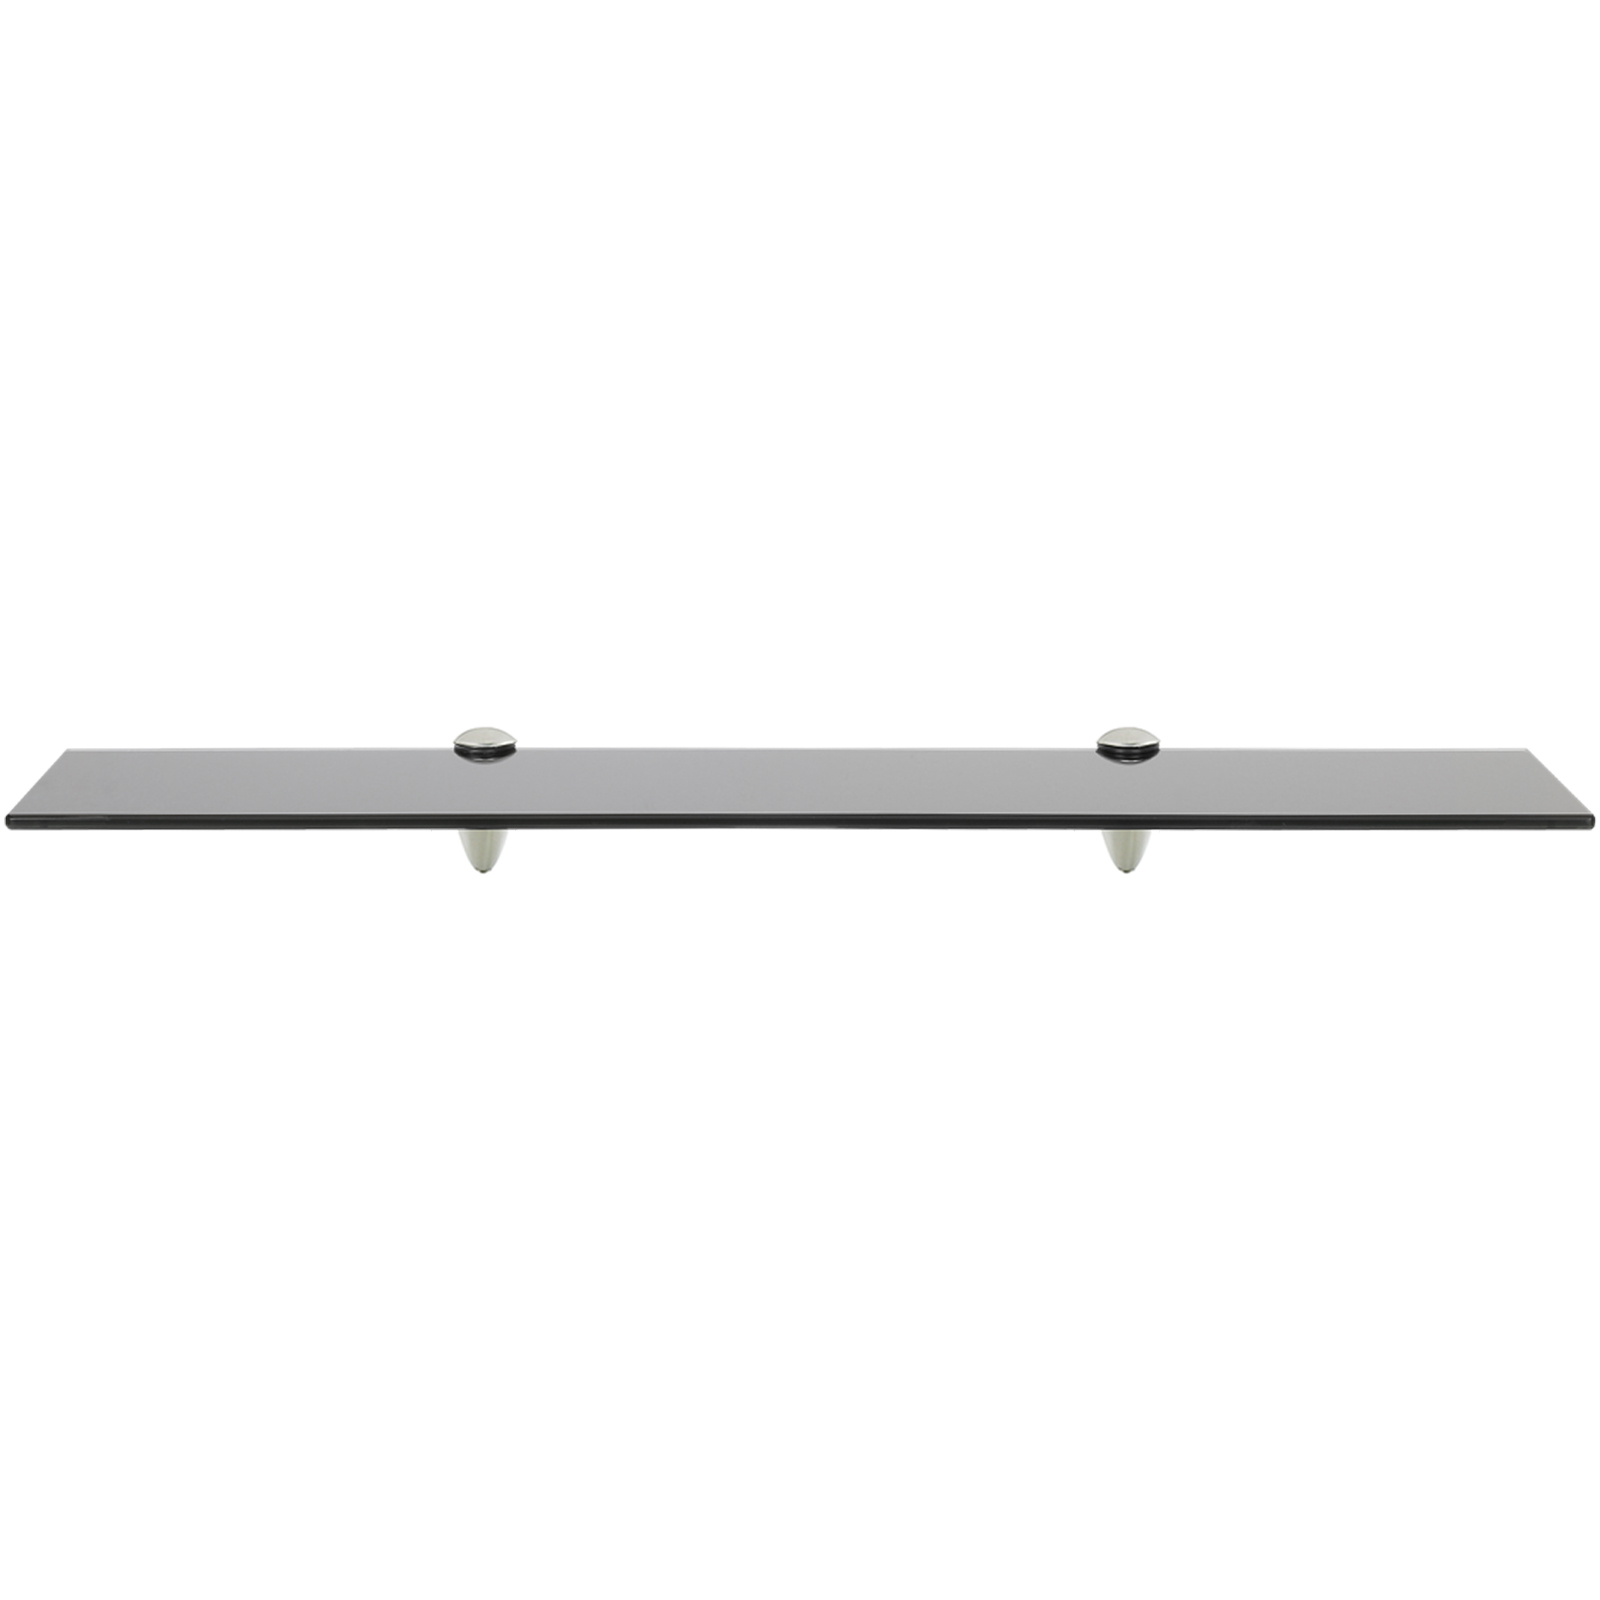 HARTLEYS-BLACK-GLASS-FLOATING-WALL-MOUNTED-SHELF-CHROME-FIXINGS-BATHROOM-DISPLAY thumbnail 14